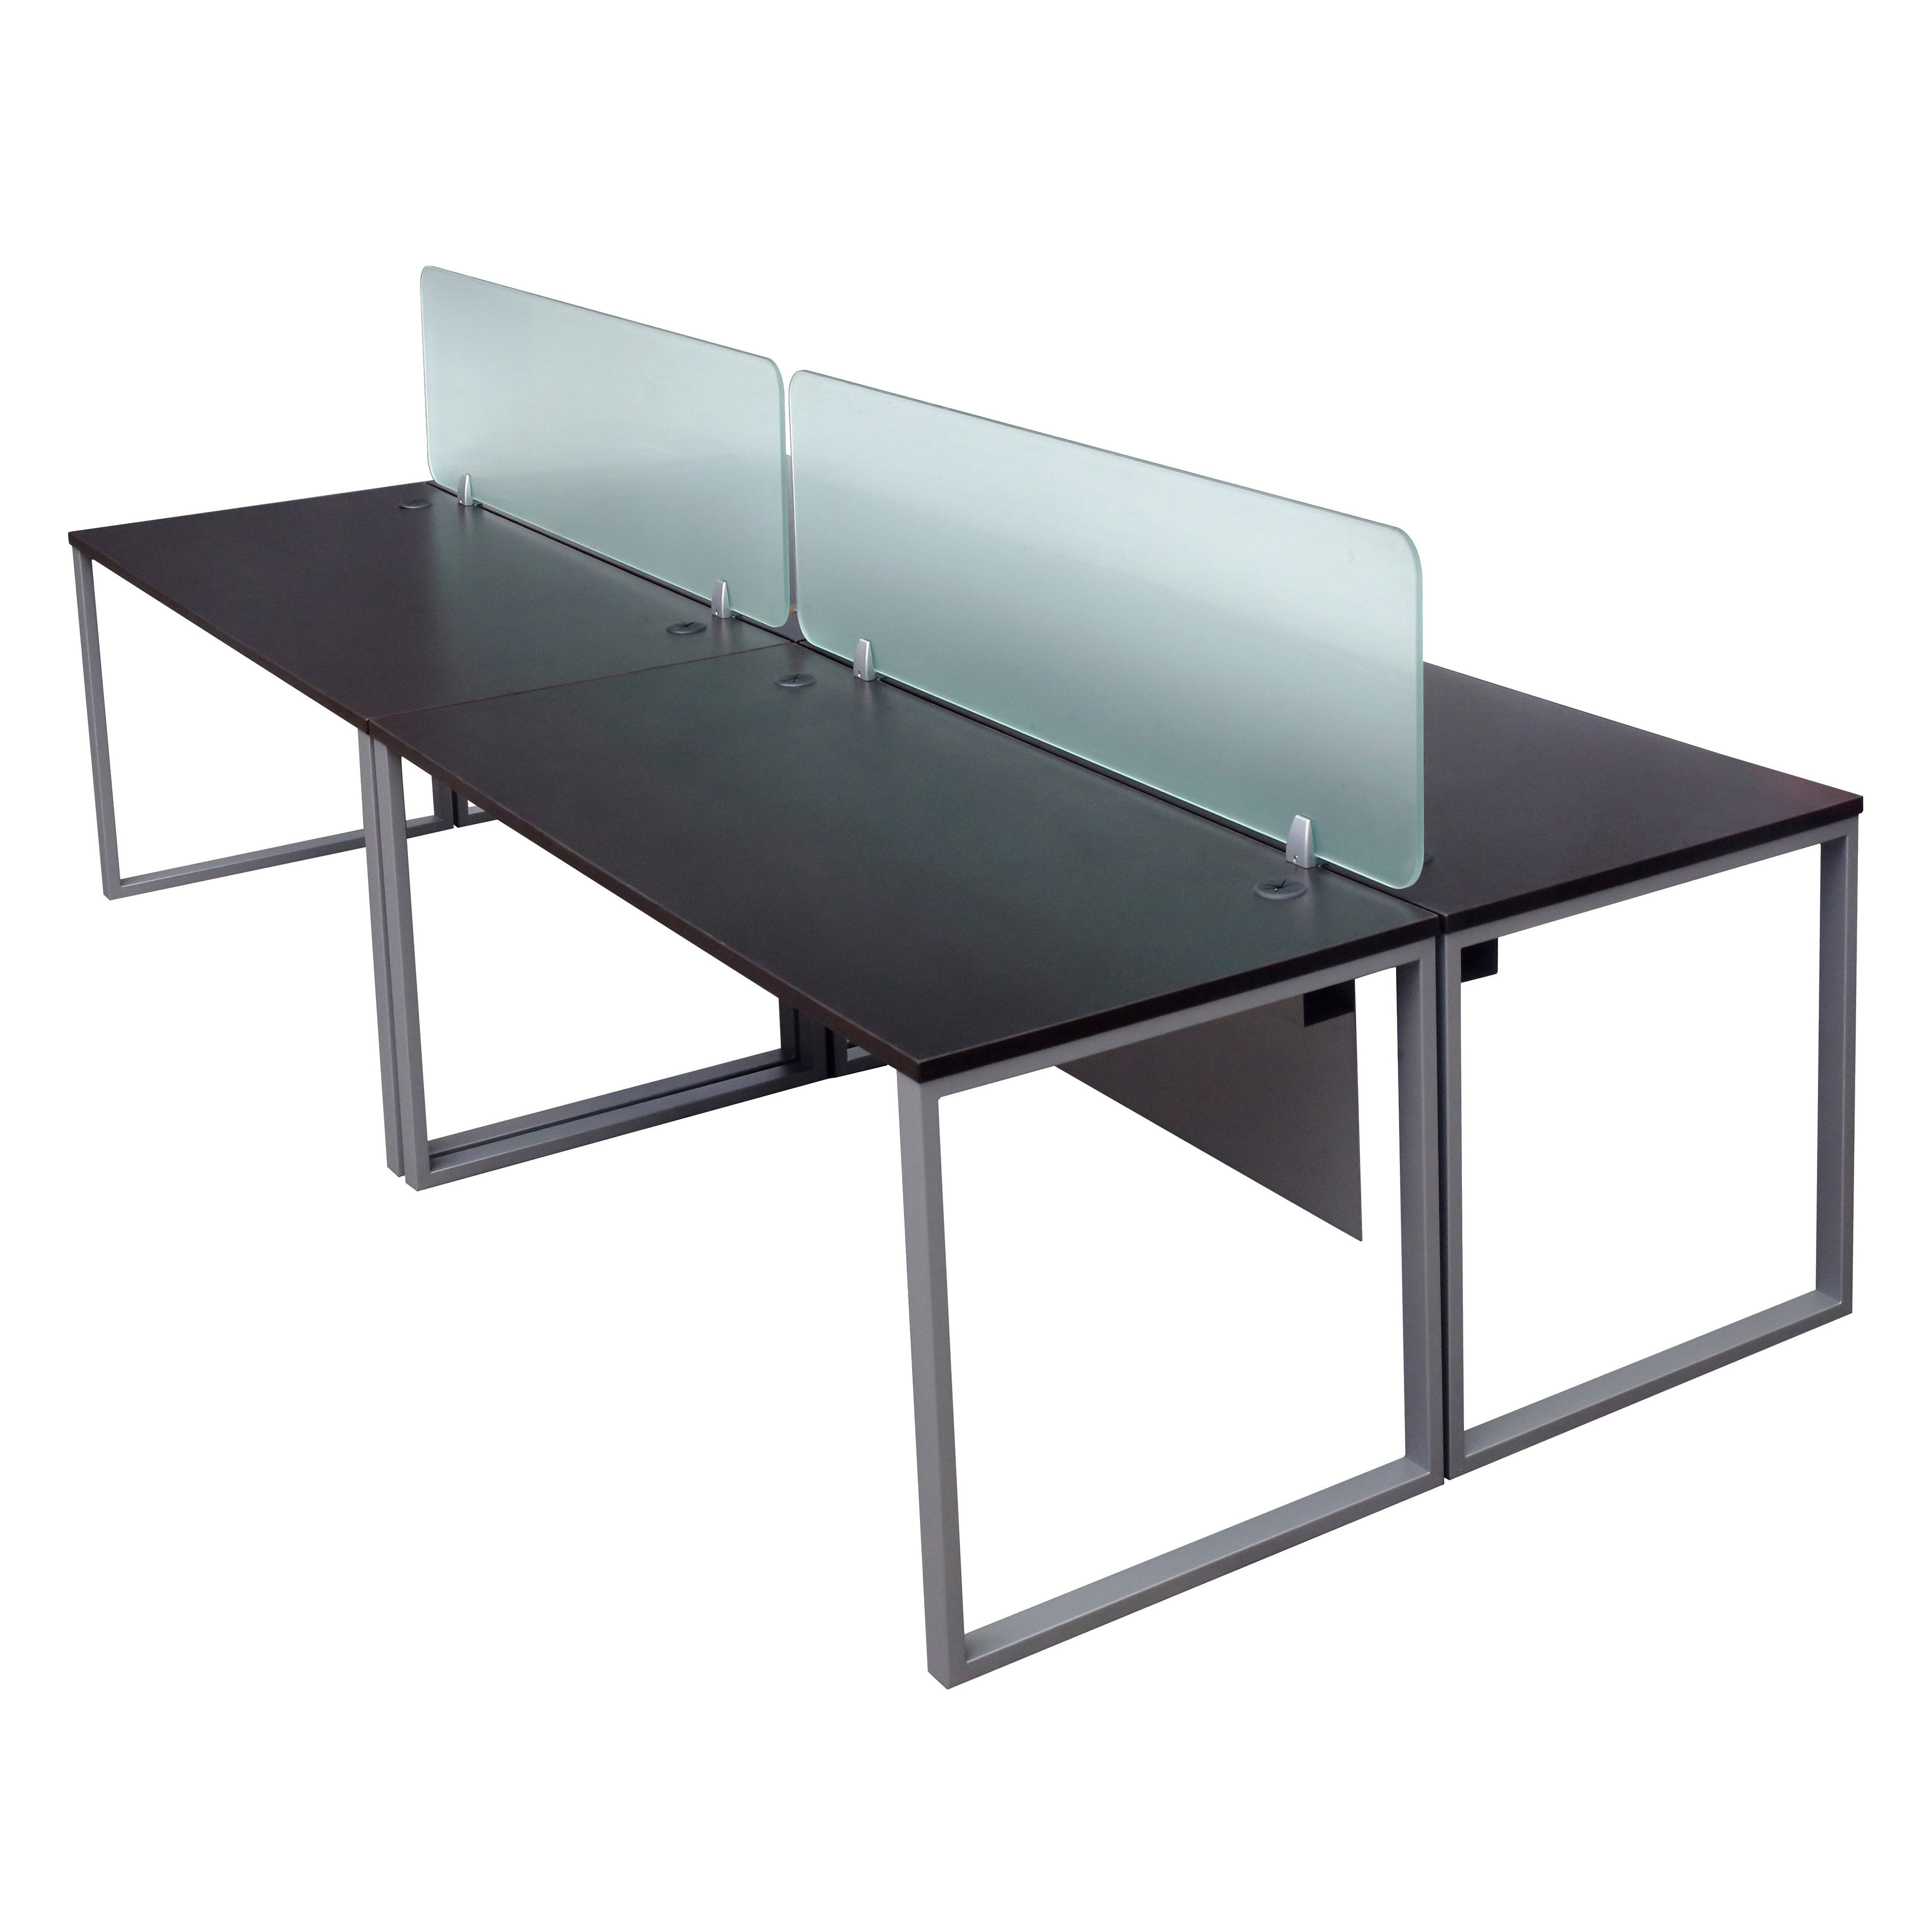 Lair Express Benching Table With Glass Dividers 2 232